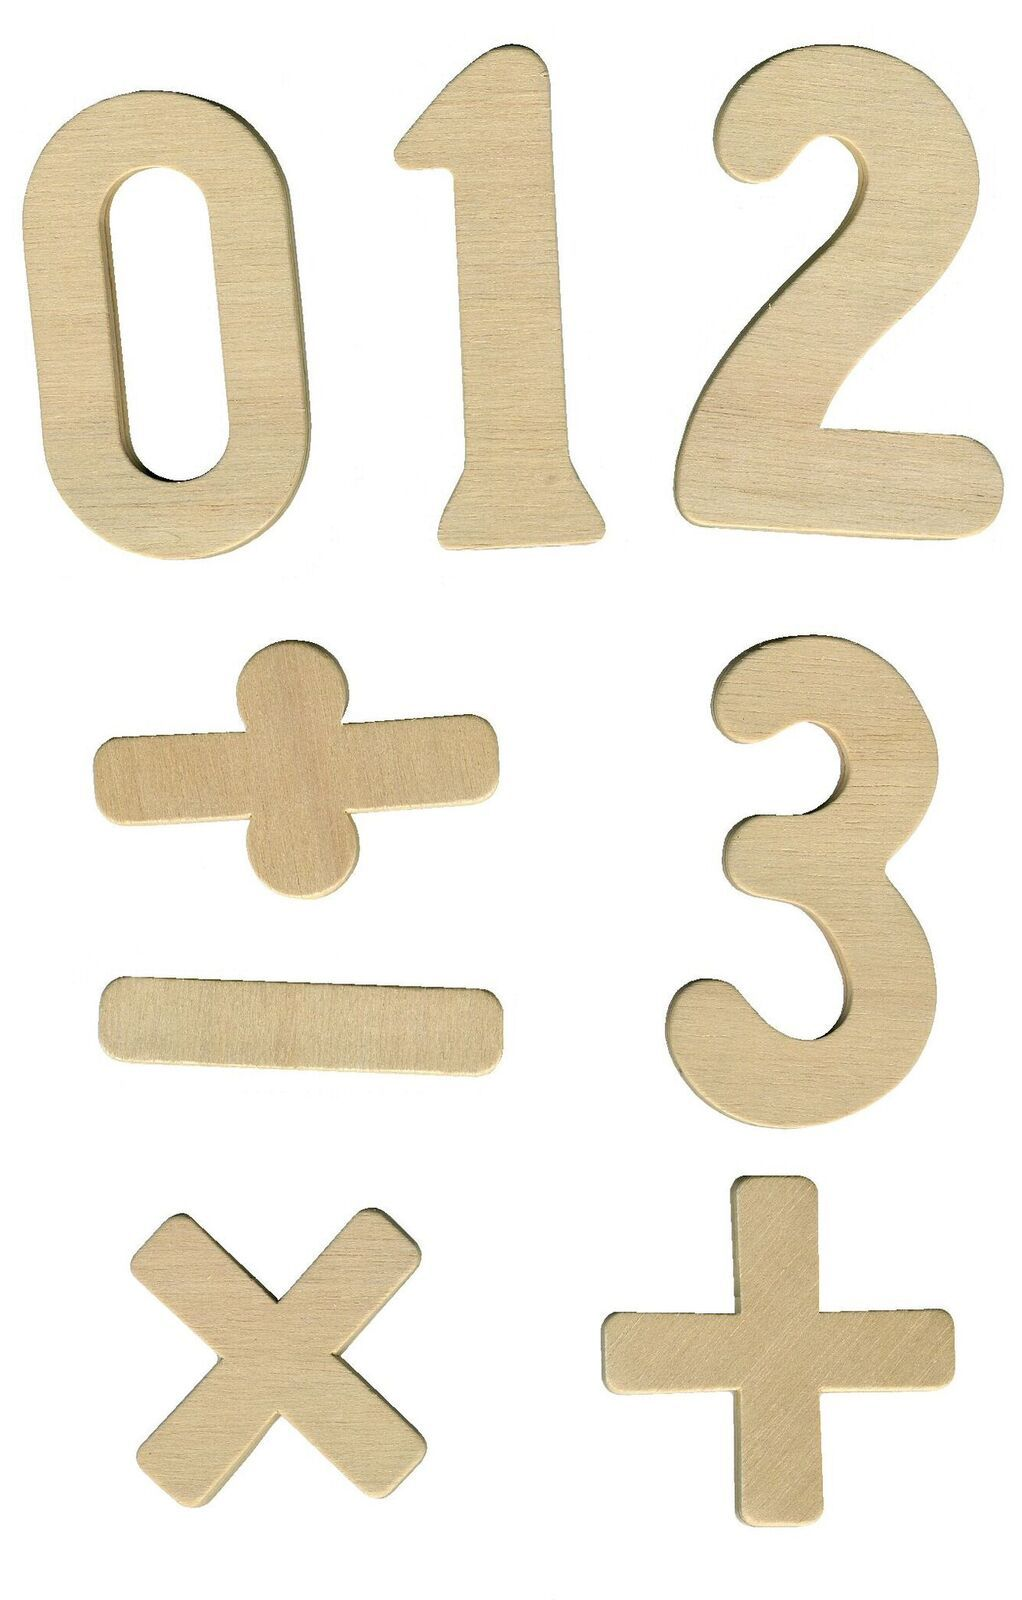 Wooden Numbers & Symbols - Assorted - Pack of 42